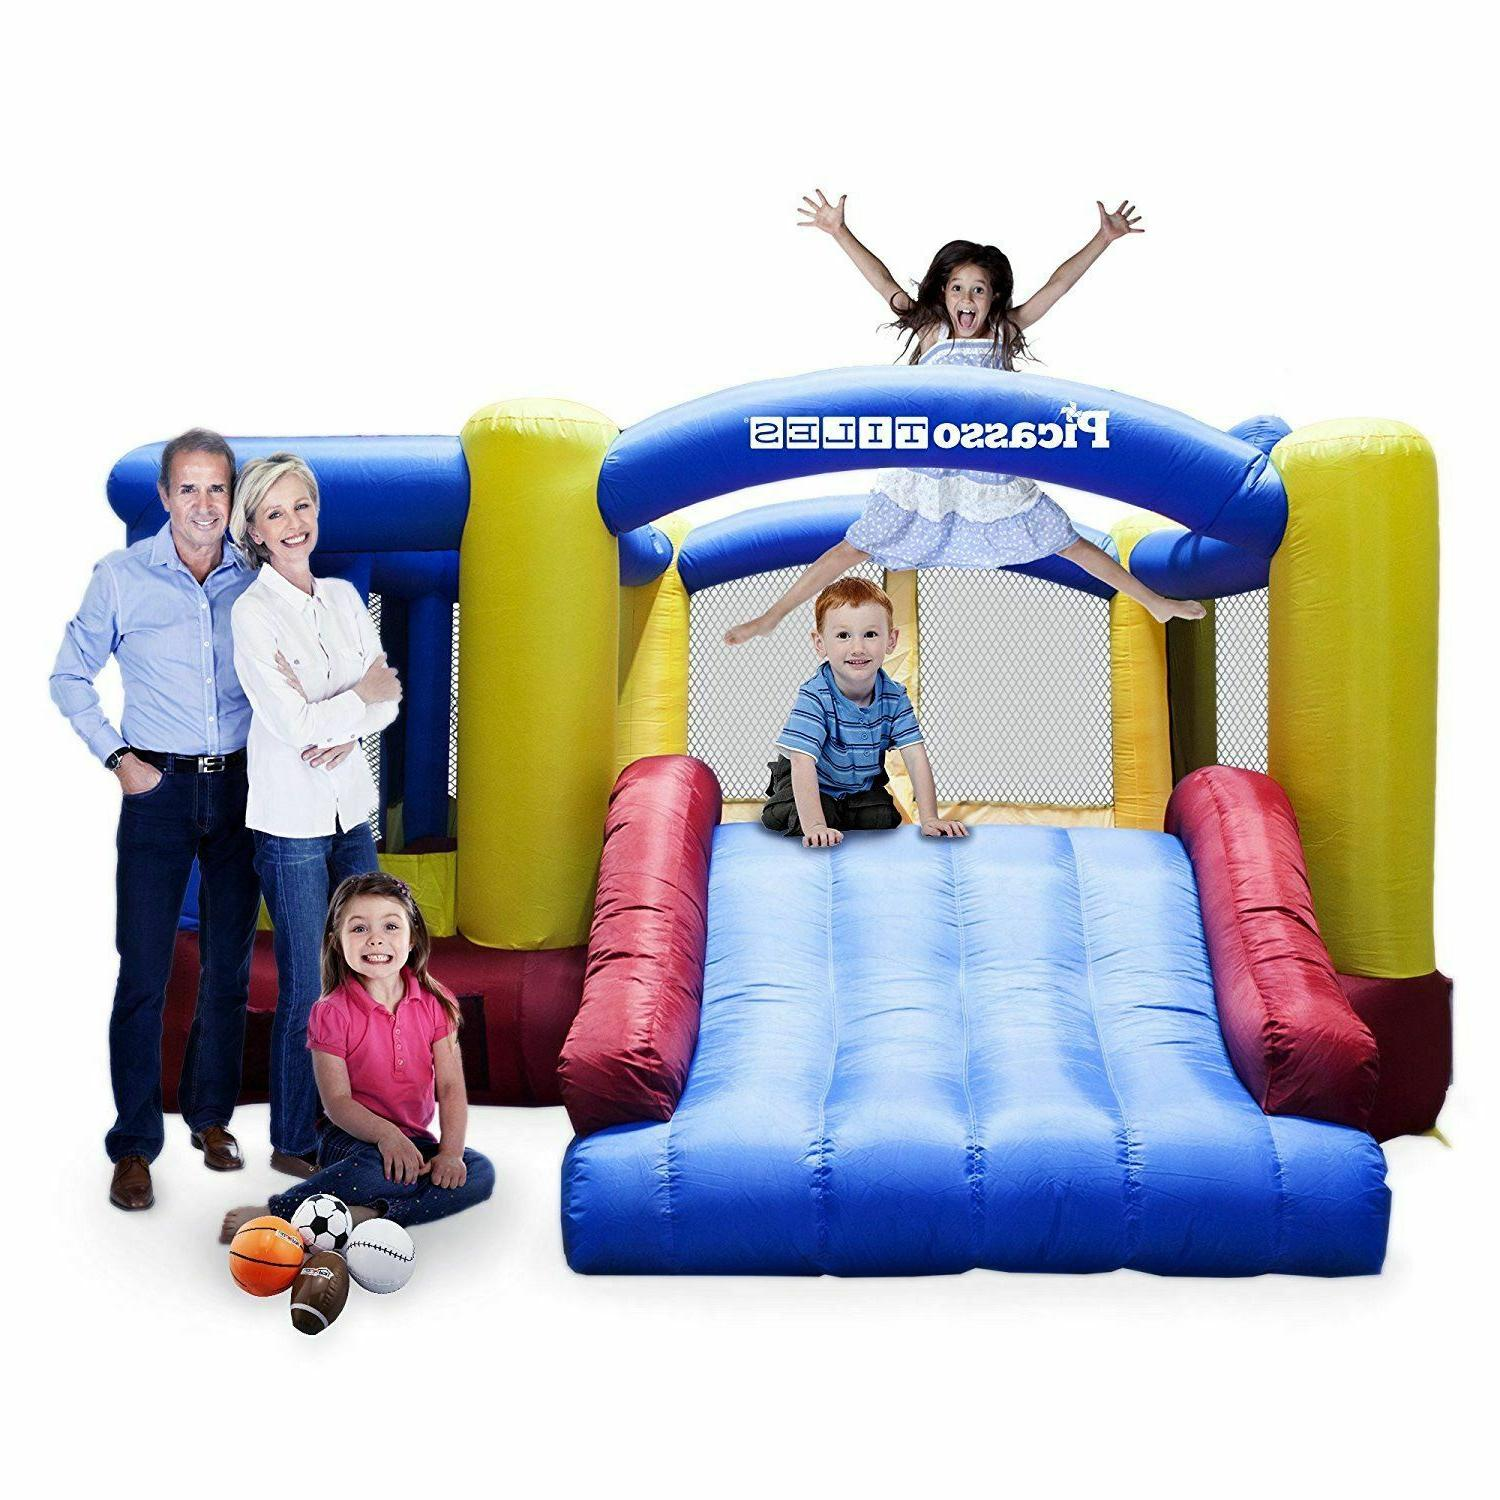 Inflatable House Slide Balls Kids with Blower New